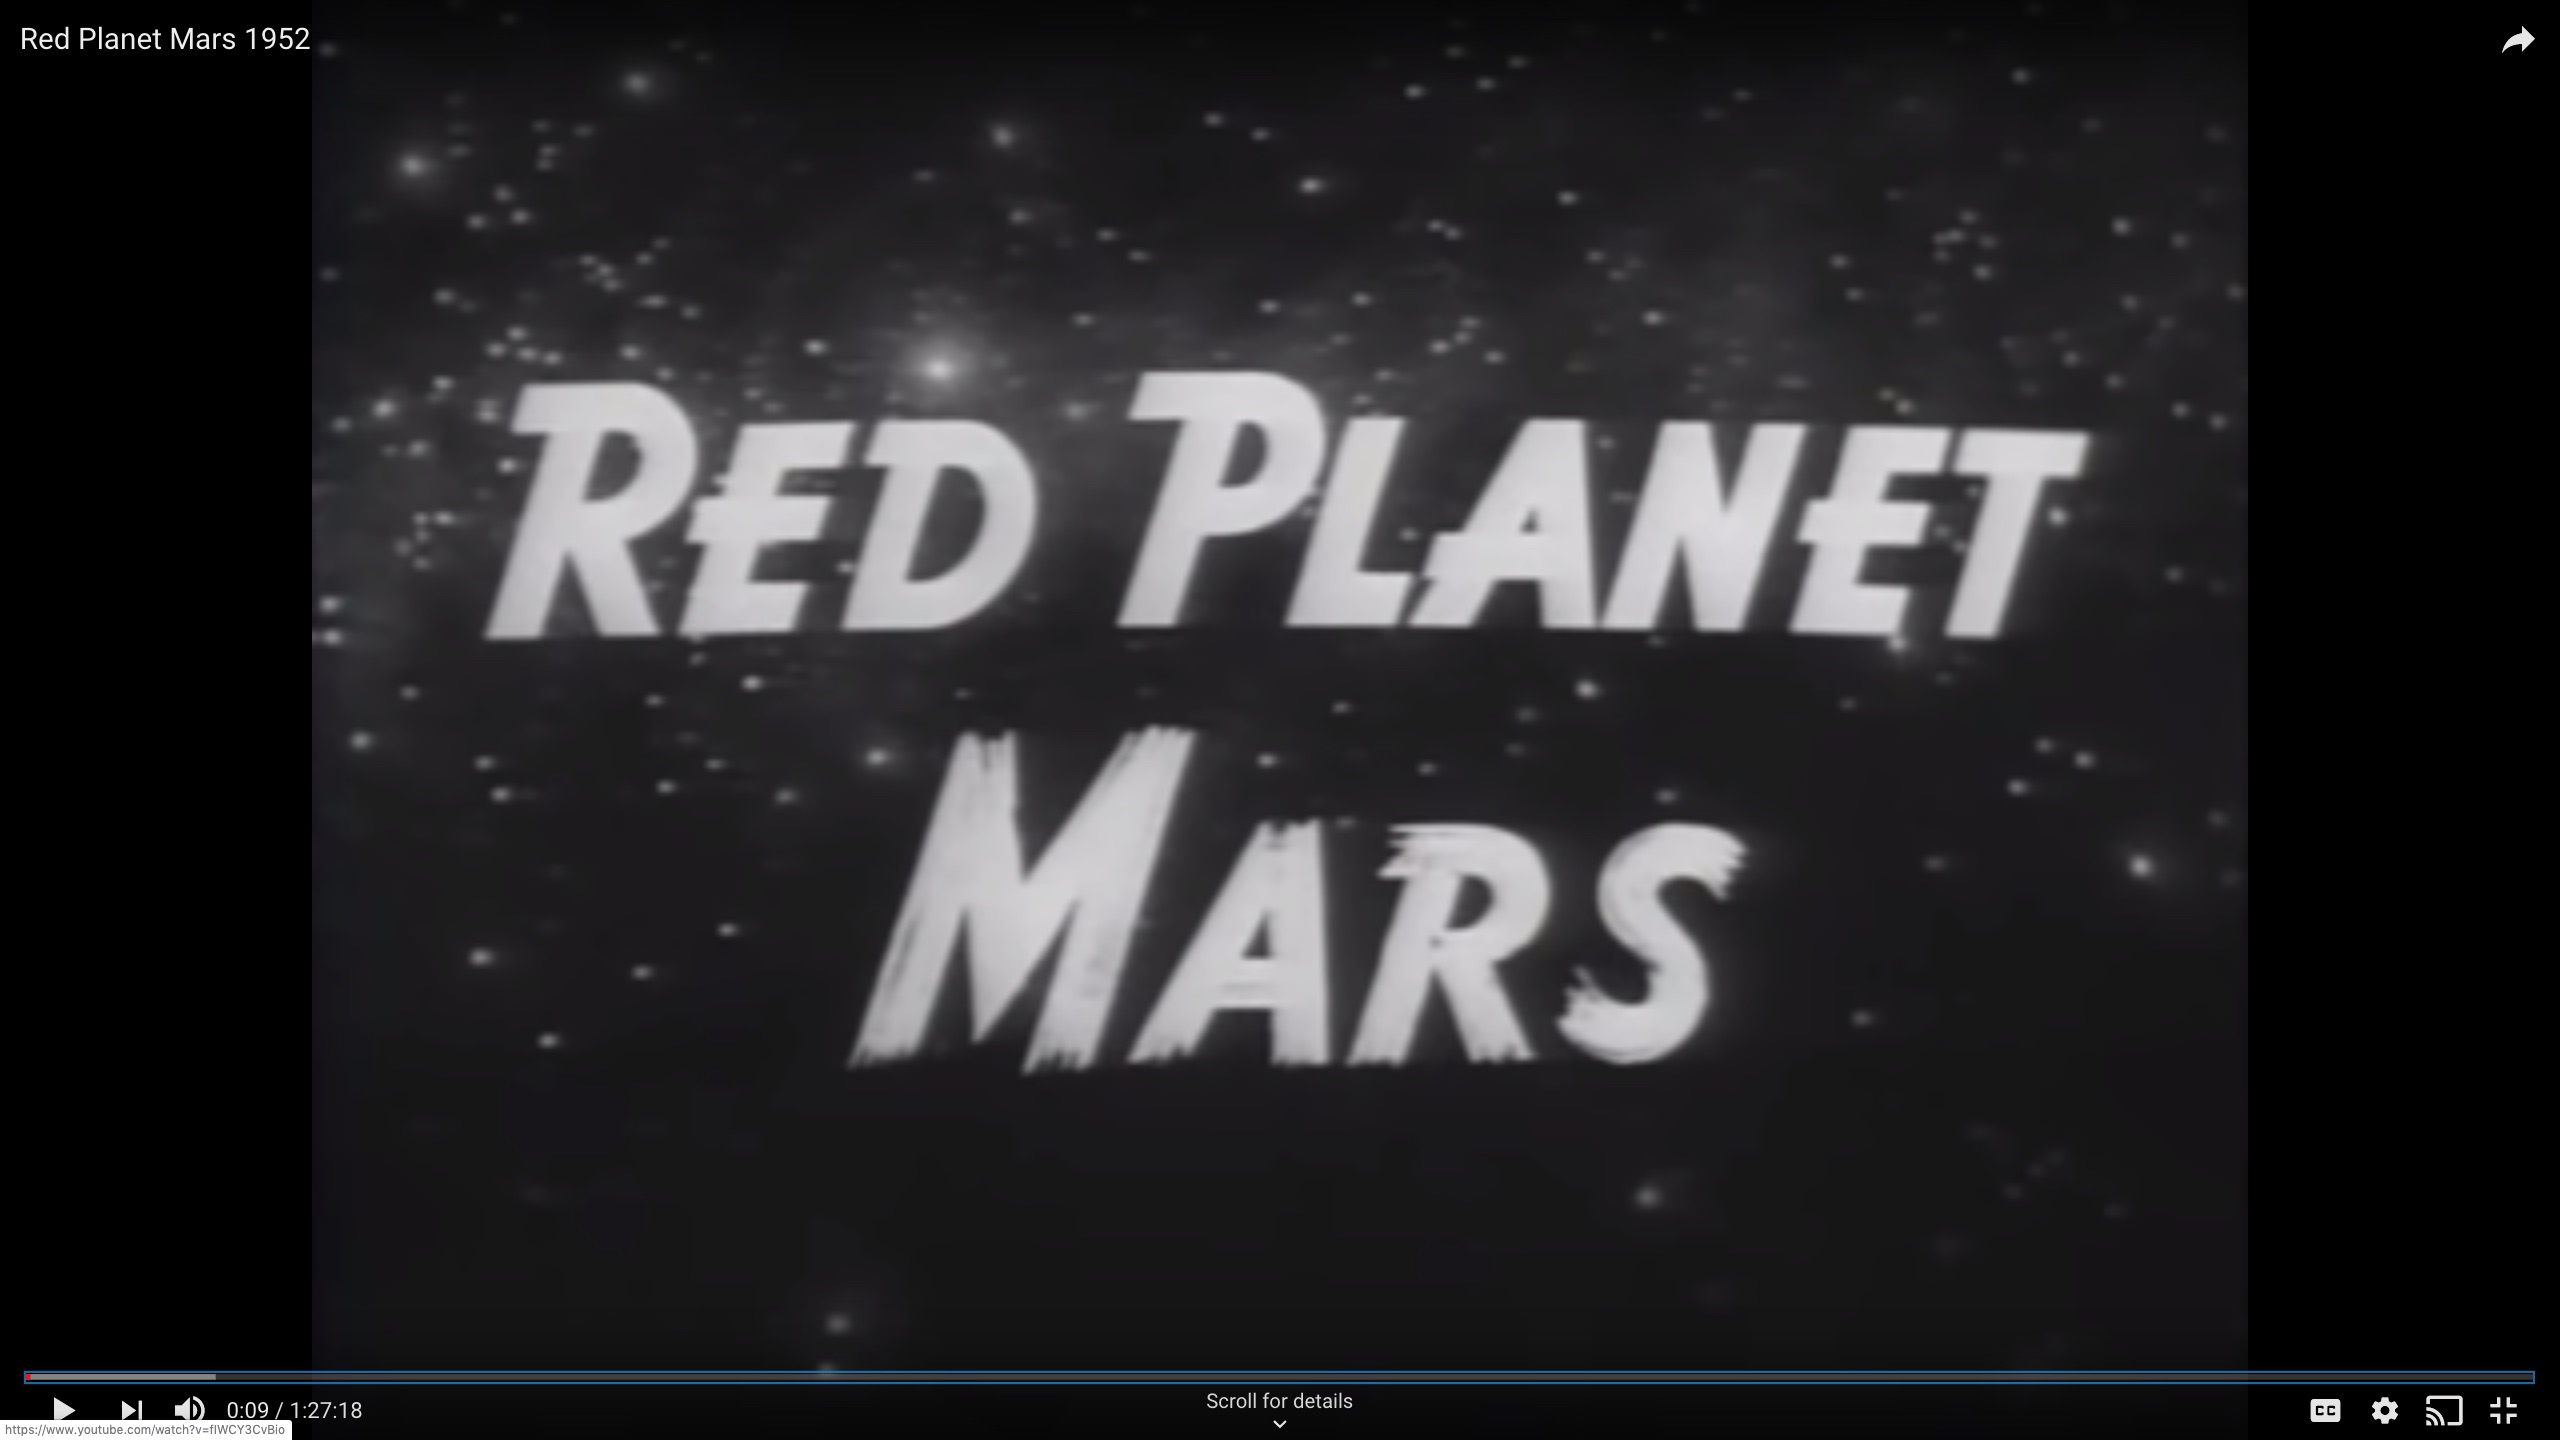 Red Planet Mars 1952